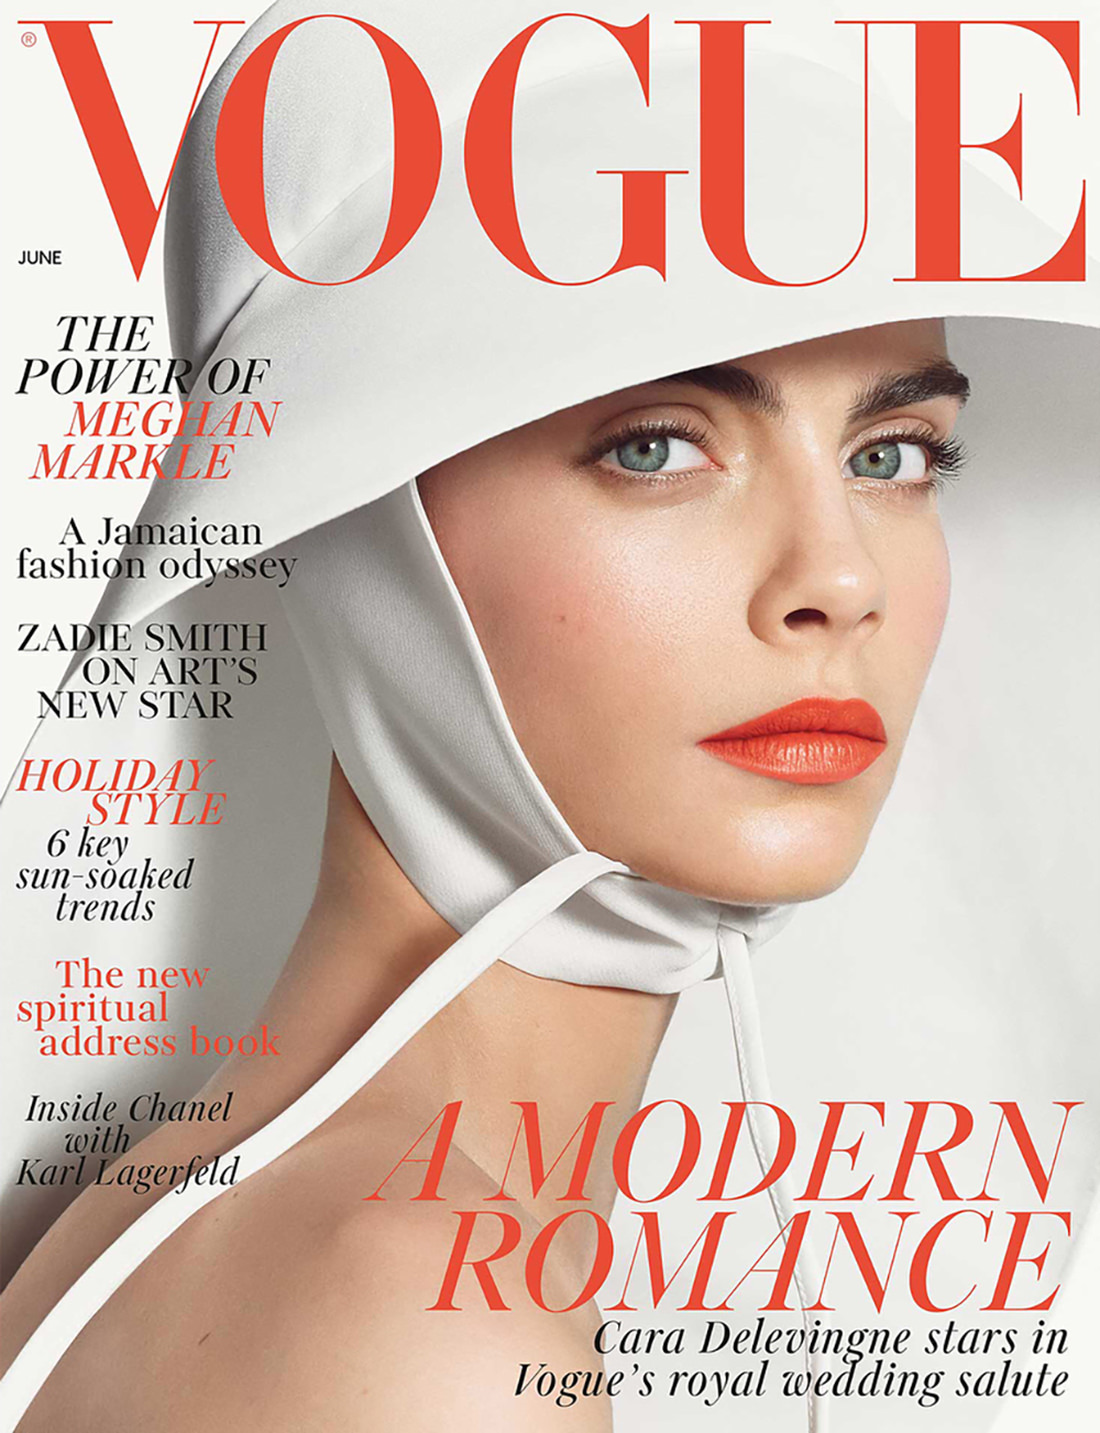 vogue-uk-june-2018.jpg